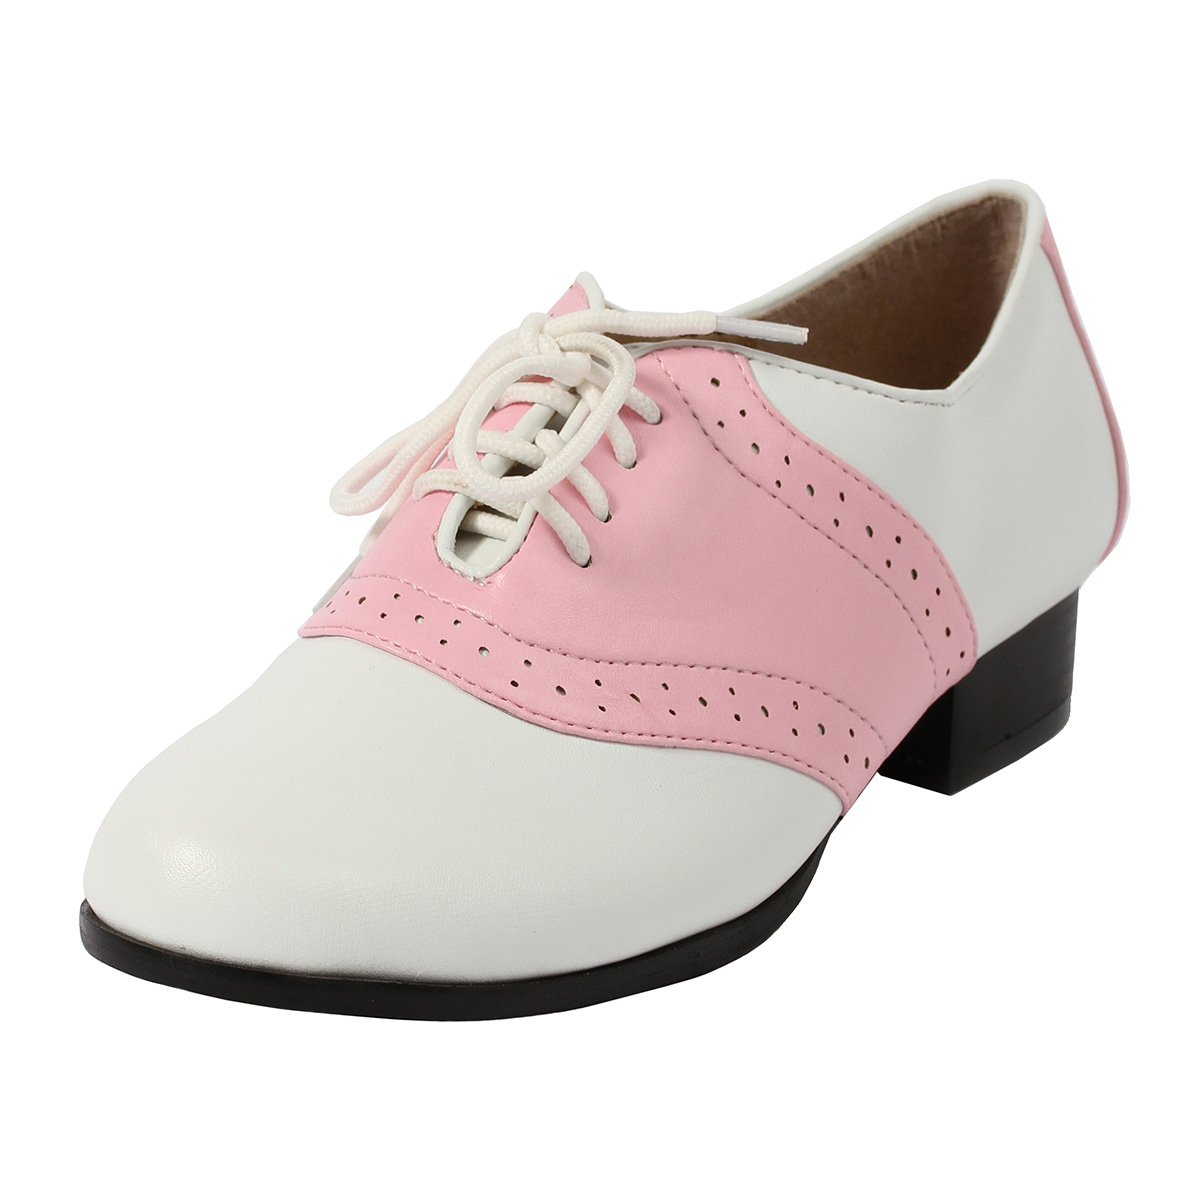 Women's Oxford Saddle Shoes Lace up Front with Low Heel Two Tone Pink White Size: 8